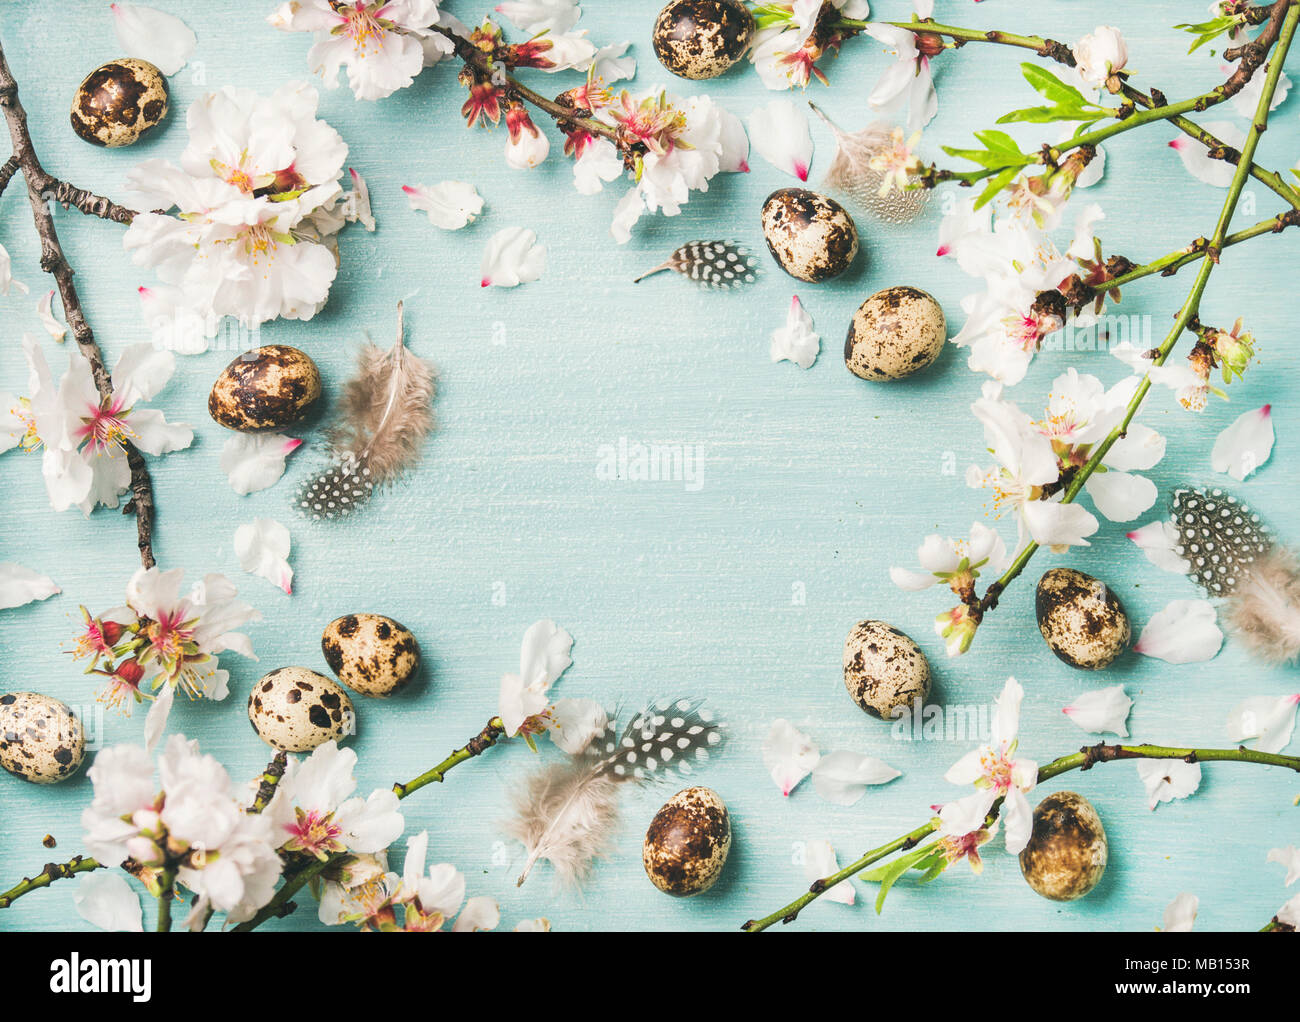 Easter holiday background. Flat-lay of tender Spring almond blossom flowers on branches, birds feathers and quail eggs over light blue background, top - Stock Image